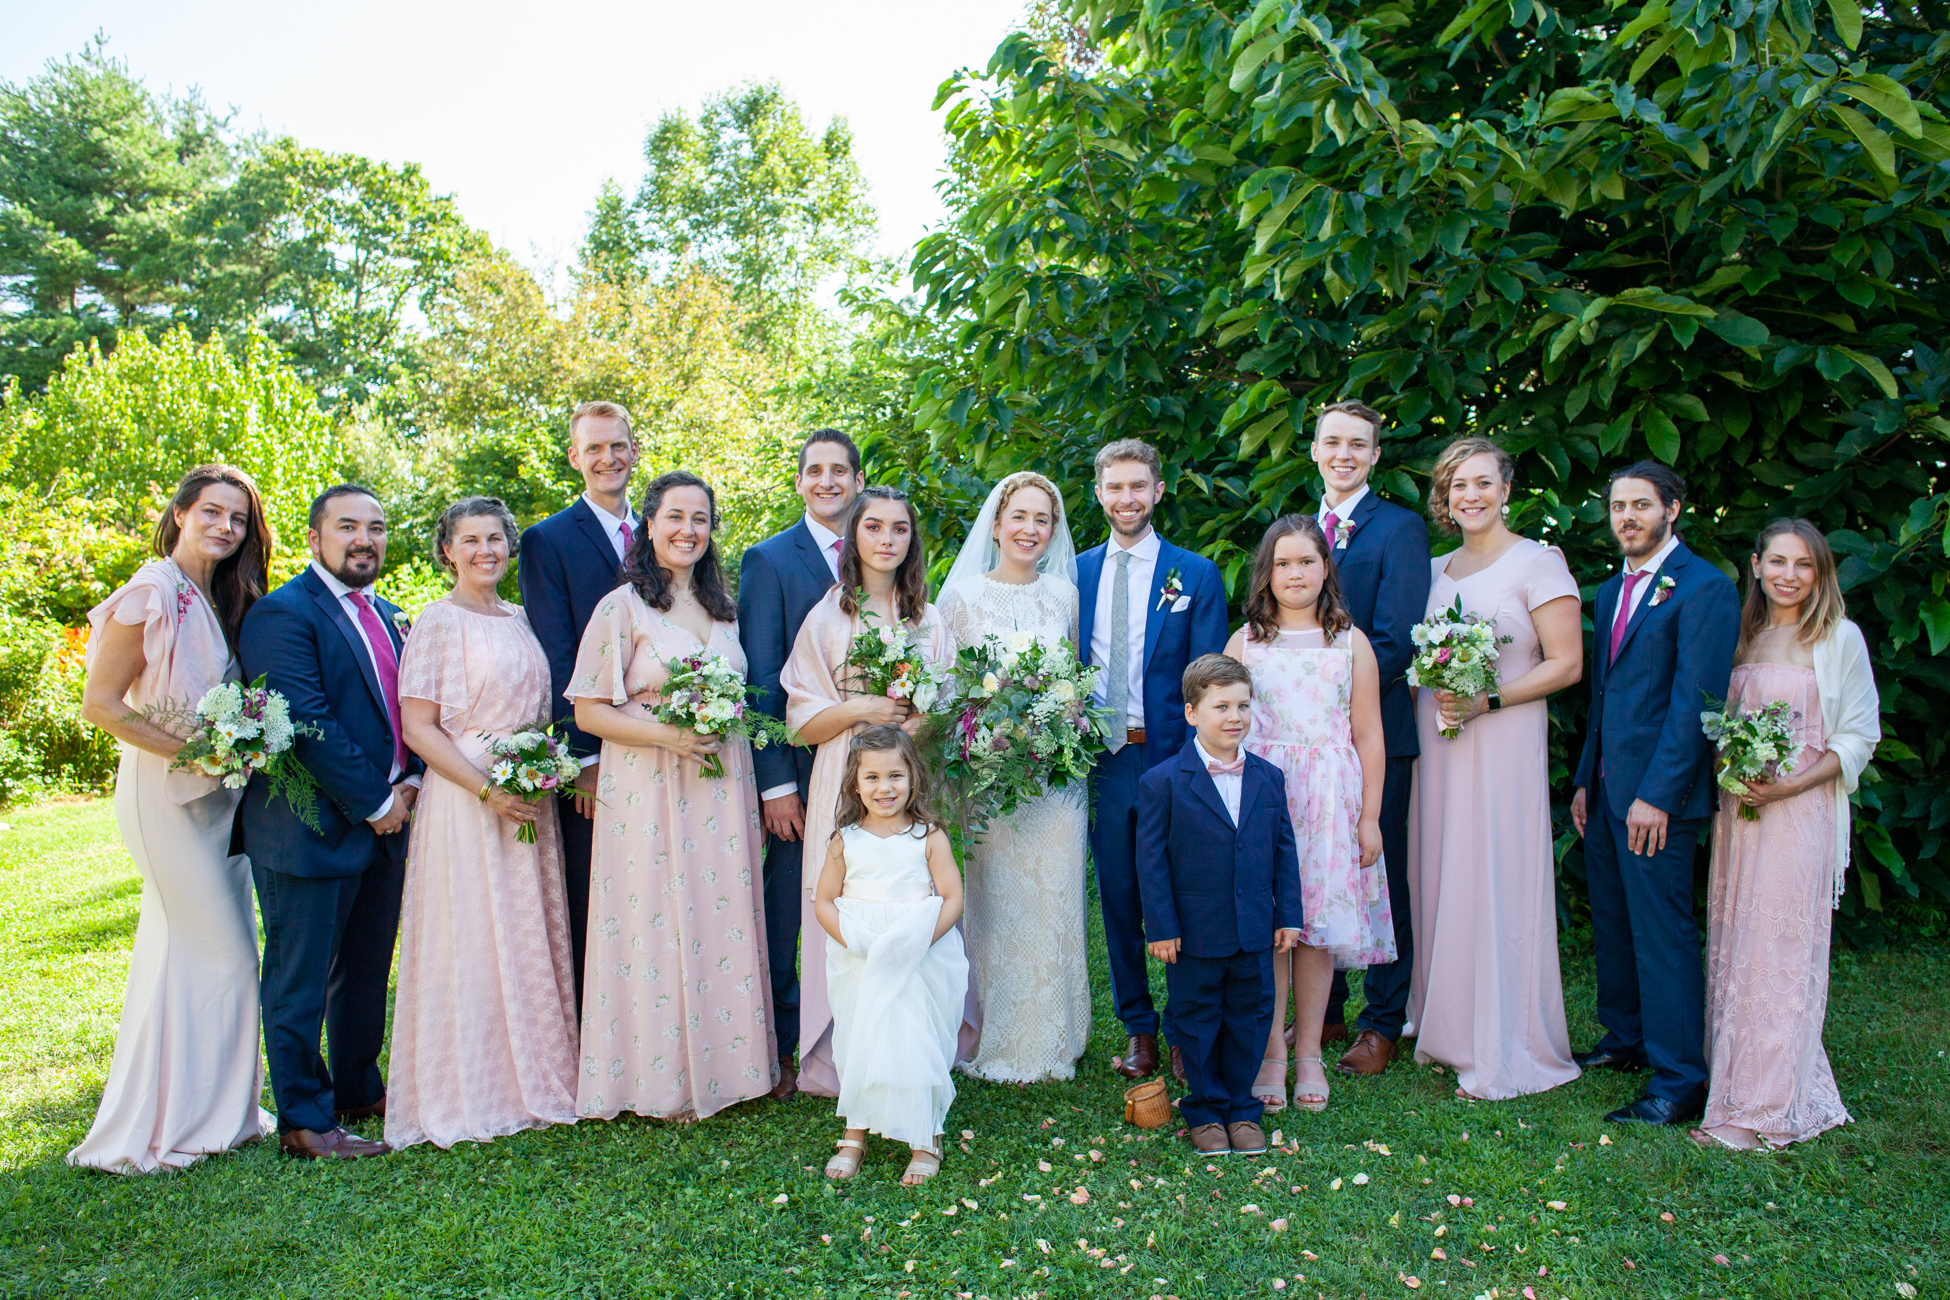 MaryFatimah and Noah's Summer Wedding at Bawa Muhaiyaddeen Fellowship Farm by Avi Loren Fox LLC-31.jpg